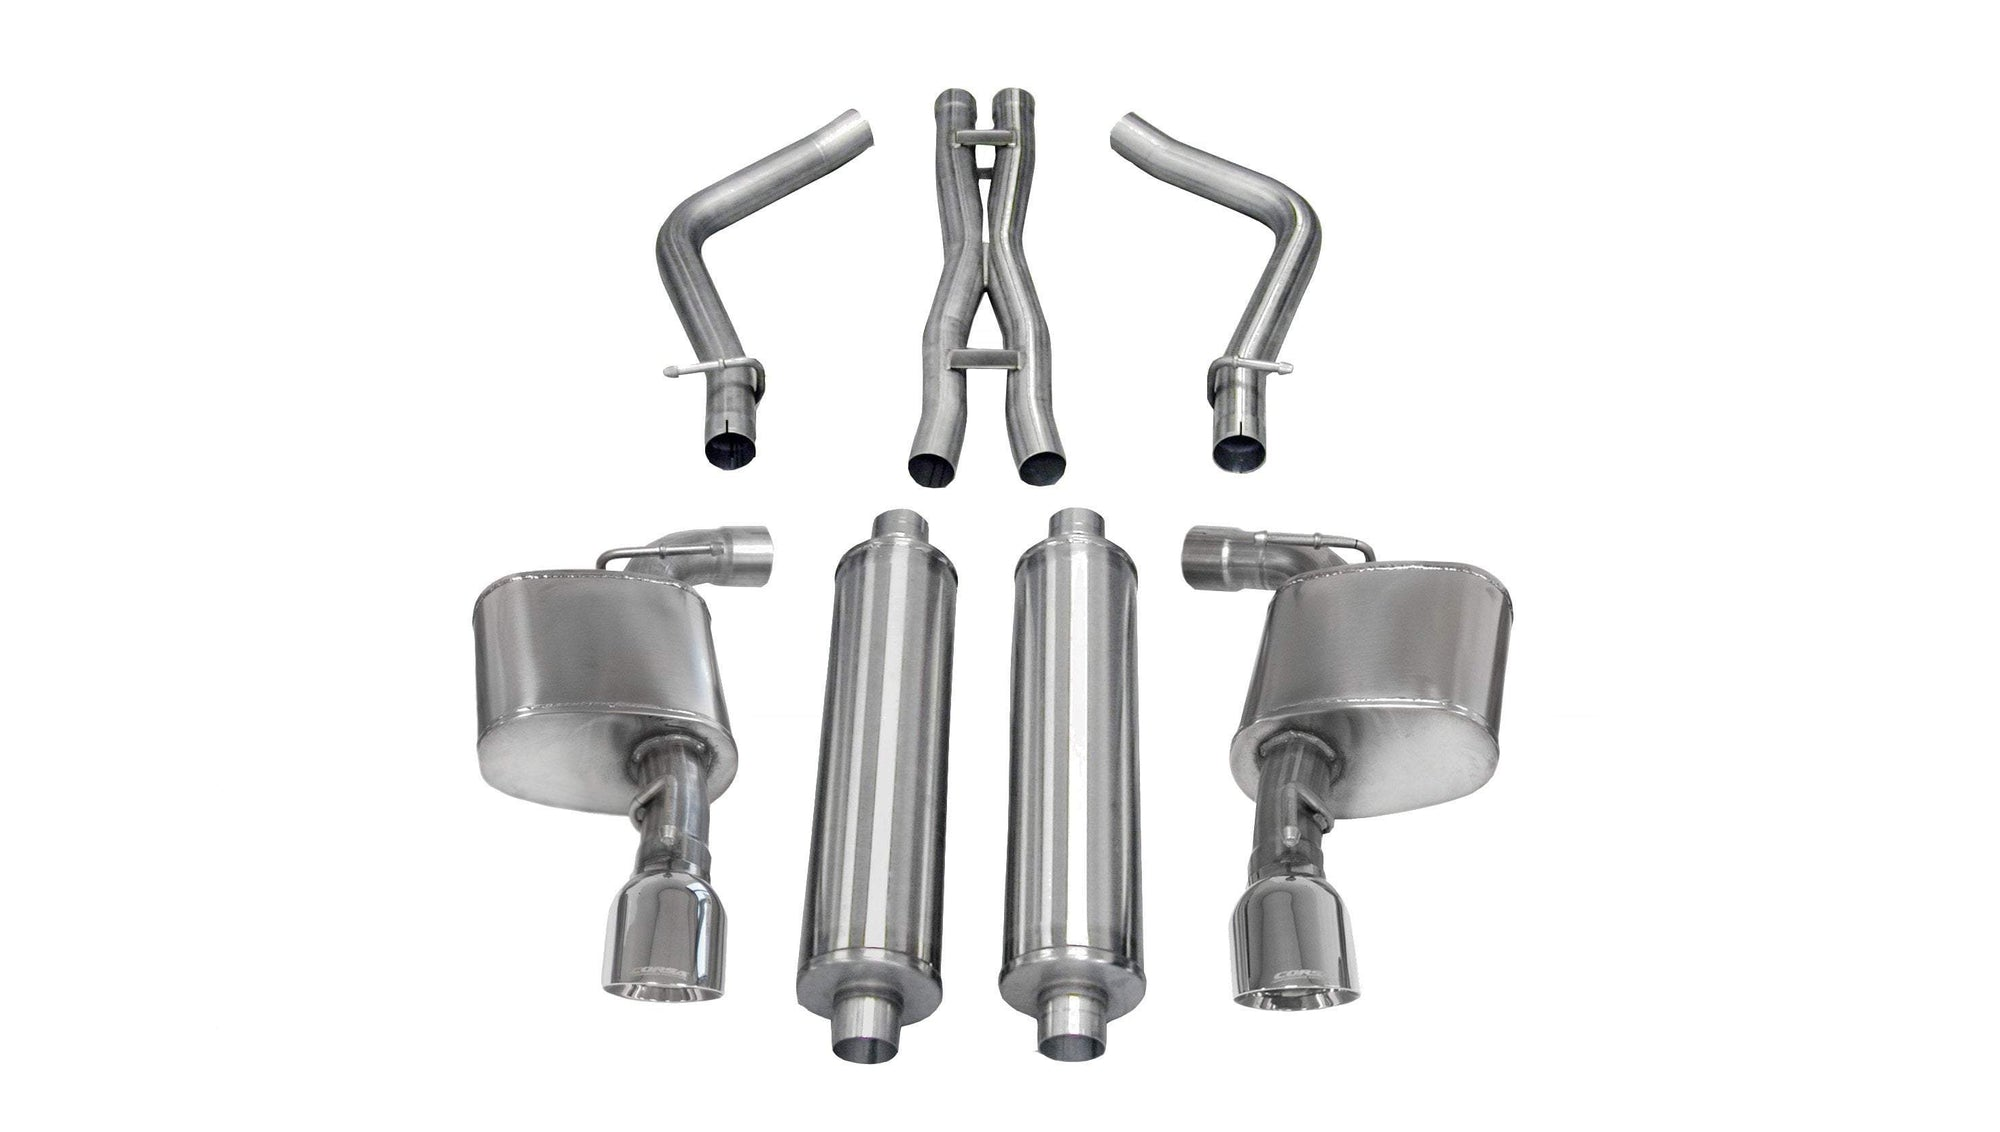 "CORSA PERFORMANCE Cat-Back Exhaust Polished / Sport / Dual Rear - Single 4.5in 2.75"" Dual Rear Exit Cat-Back Exhaust System with 4.5"" Tips (14463) Sport Sound Level"